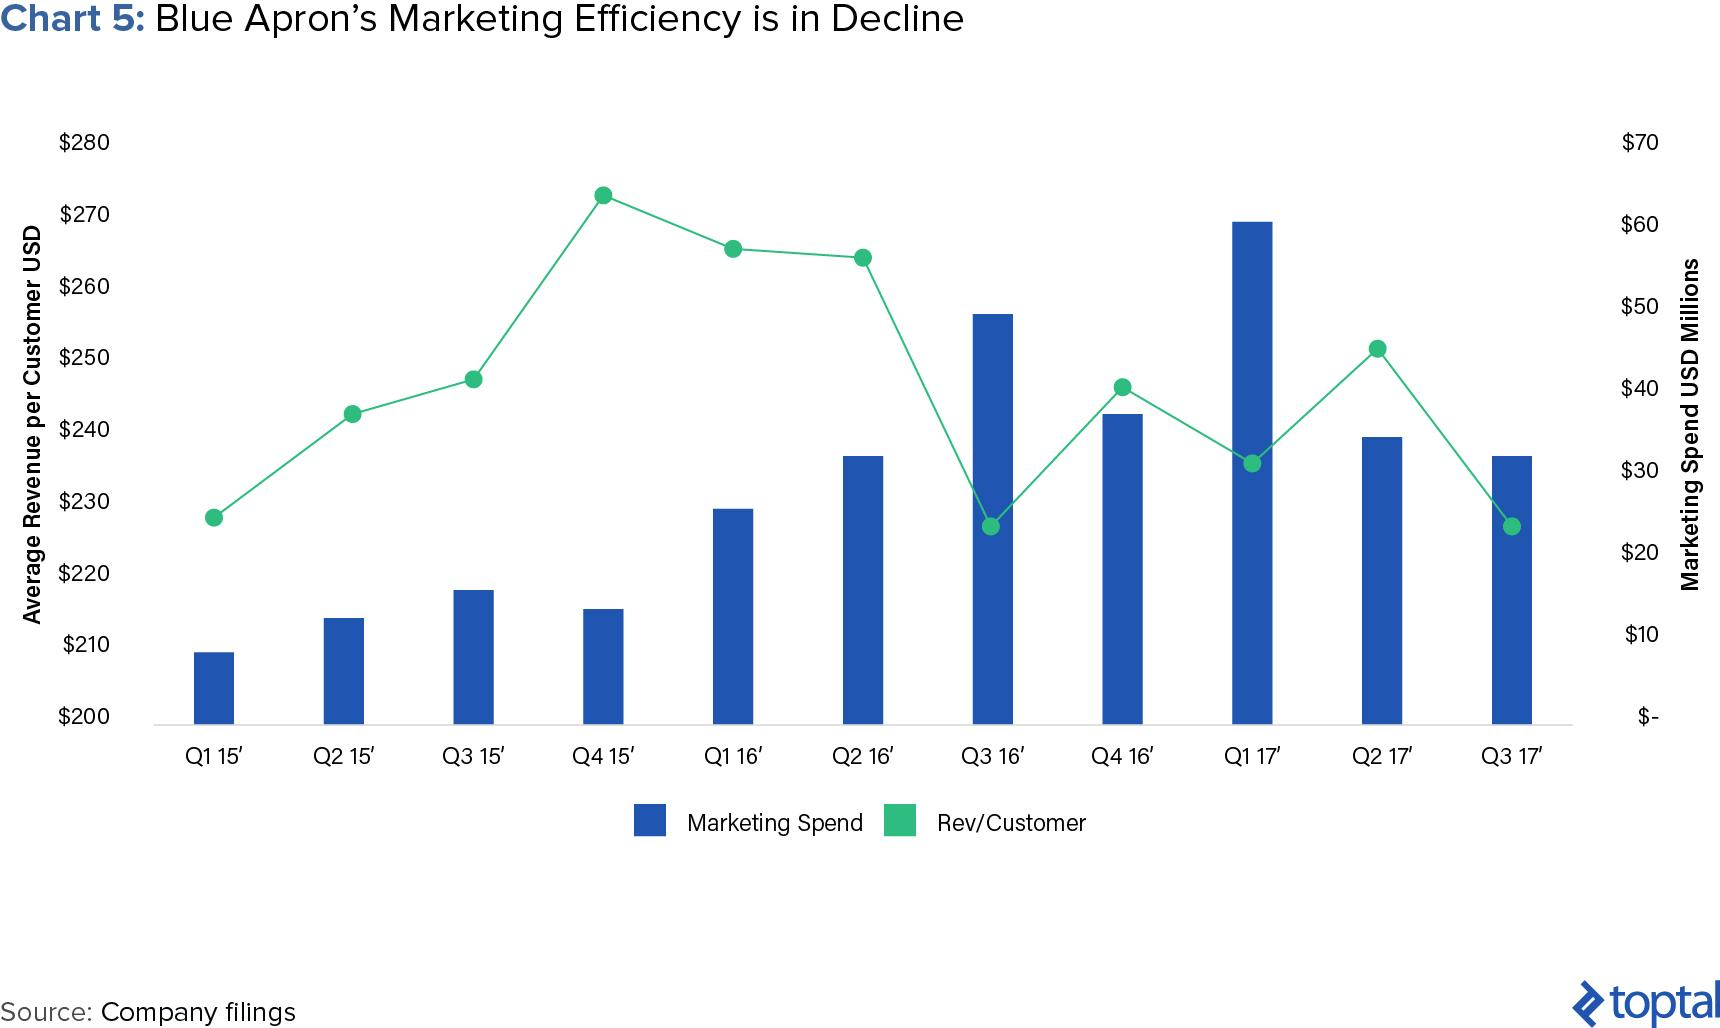 blue apron comparison of marketing spend to revenue per customer